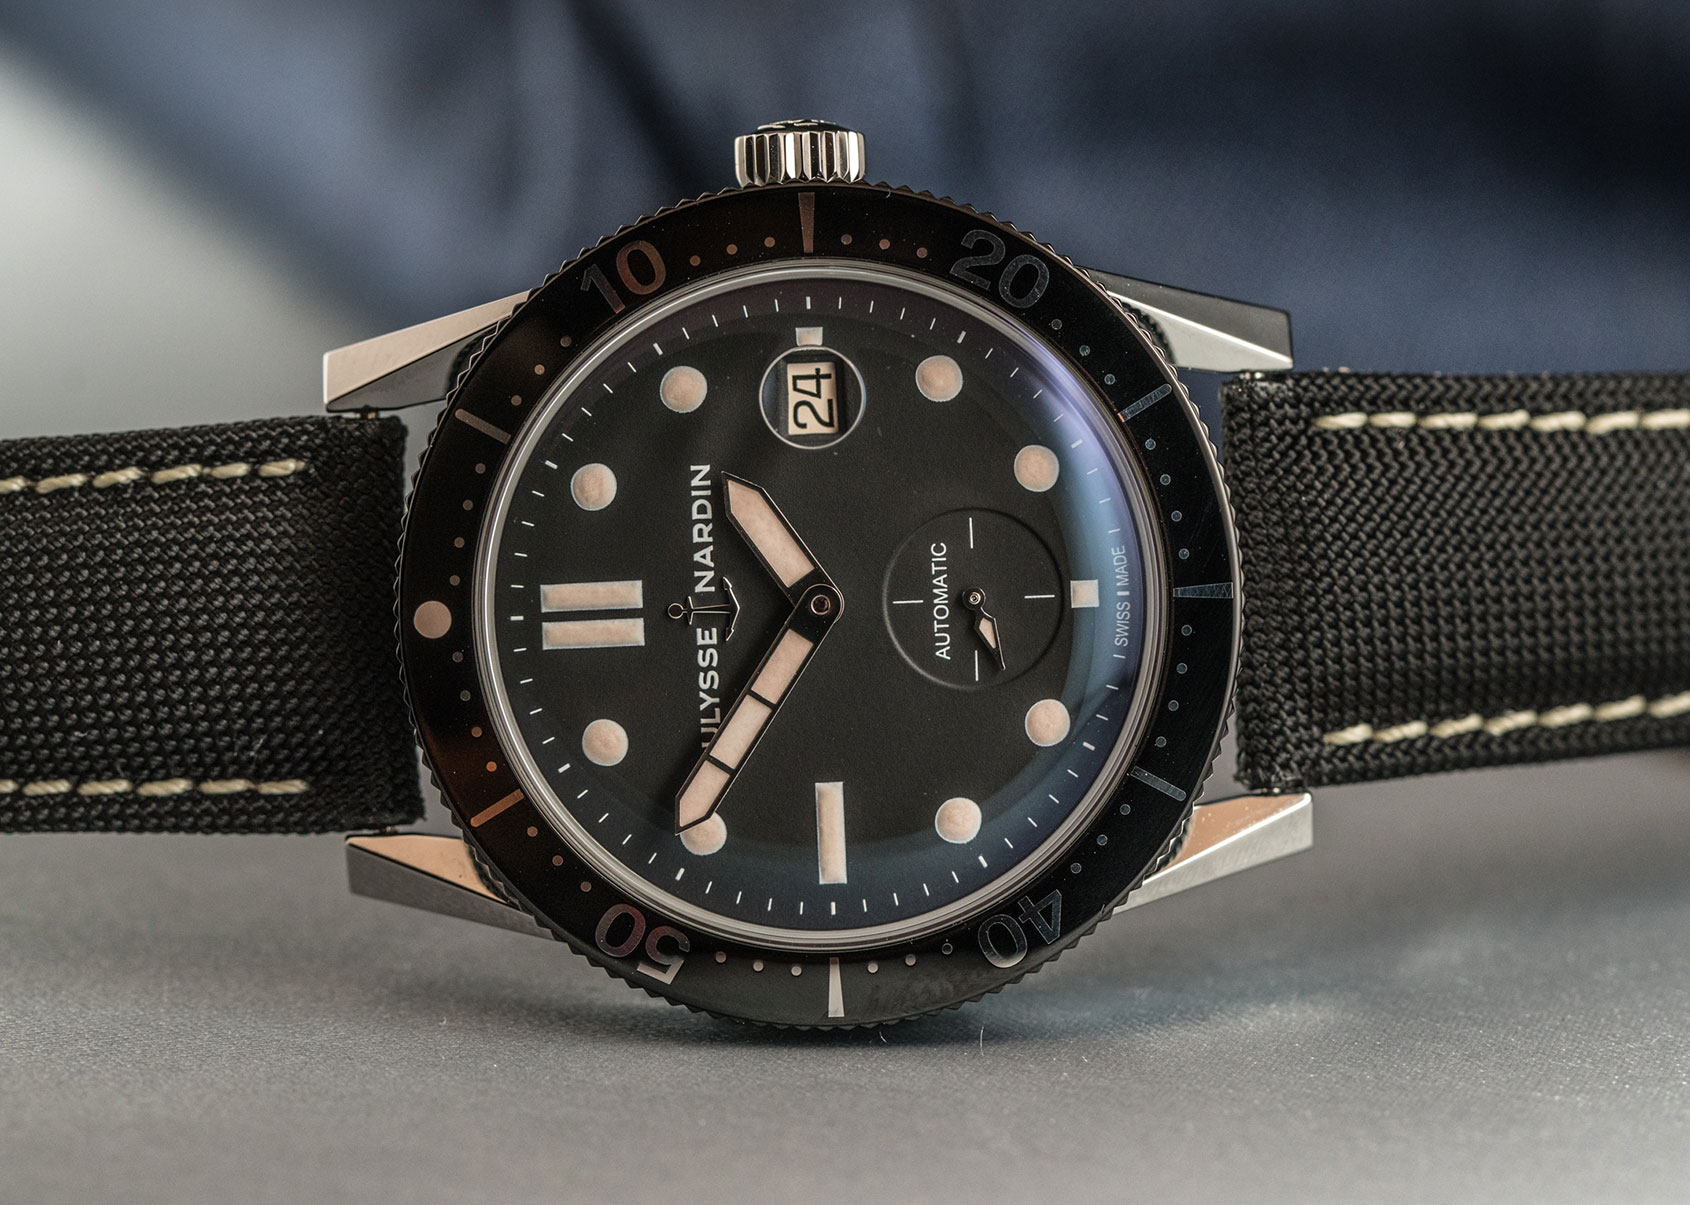 INTRODUCING: The Ulysse Nardin Diver Le Locle – a forgotten classic, revisited